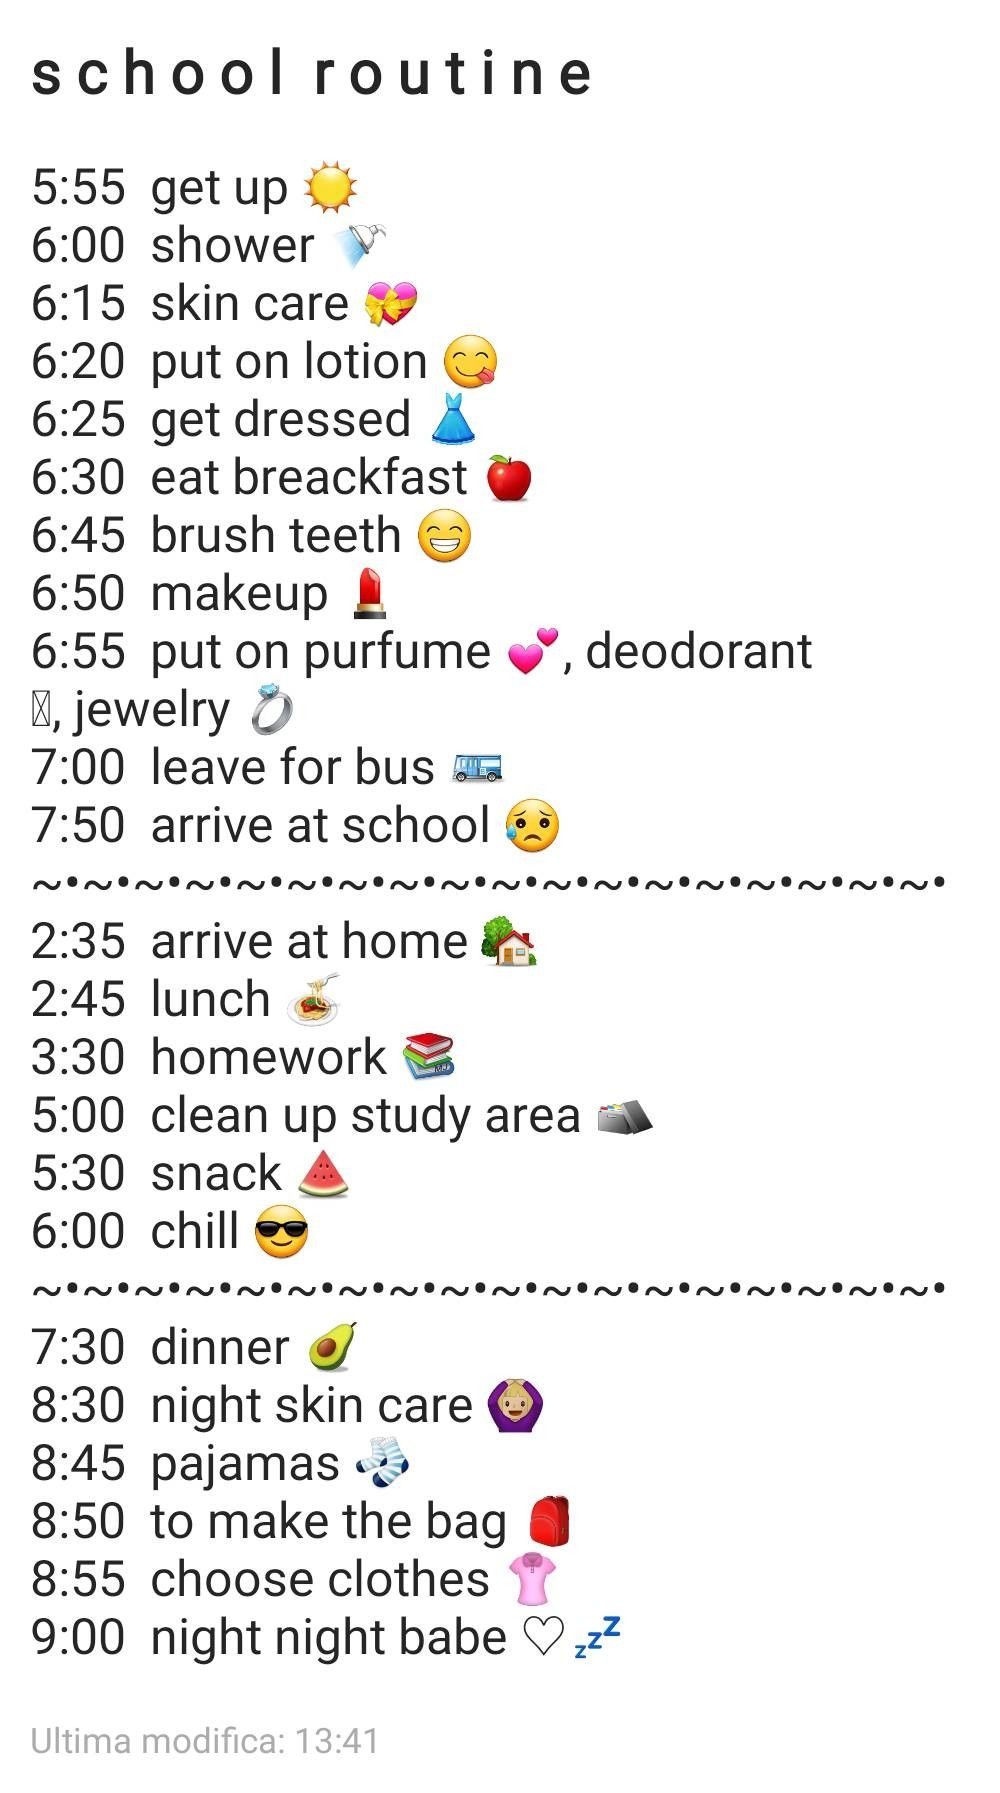 Photo of Daily routine for school